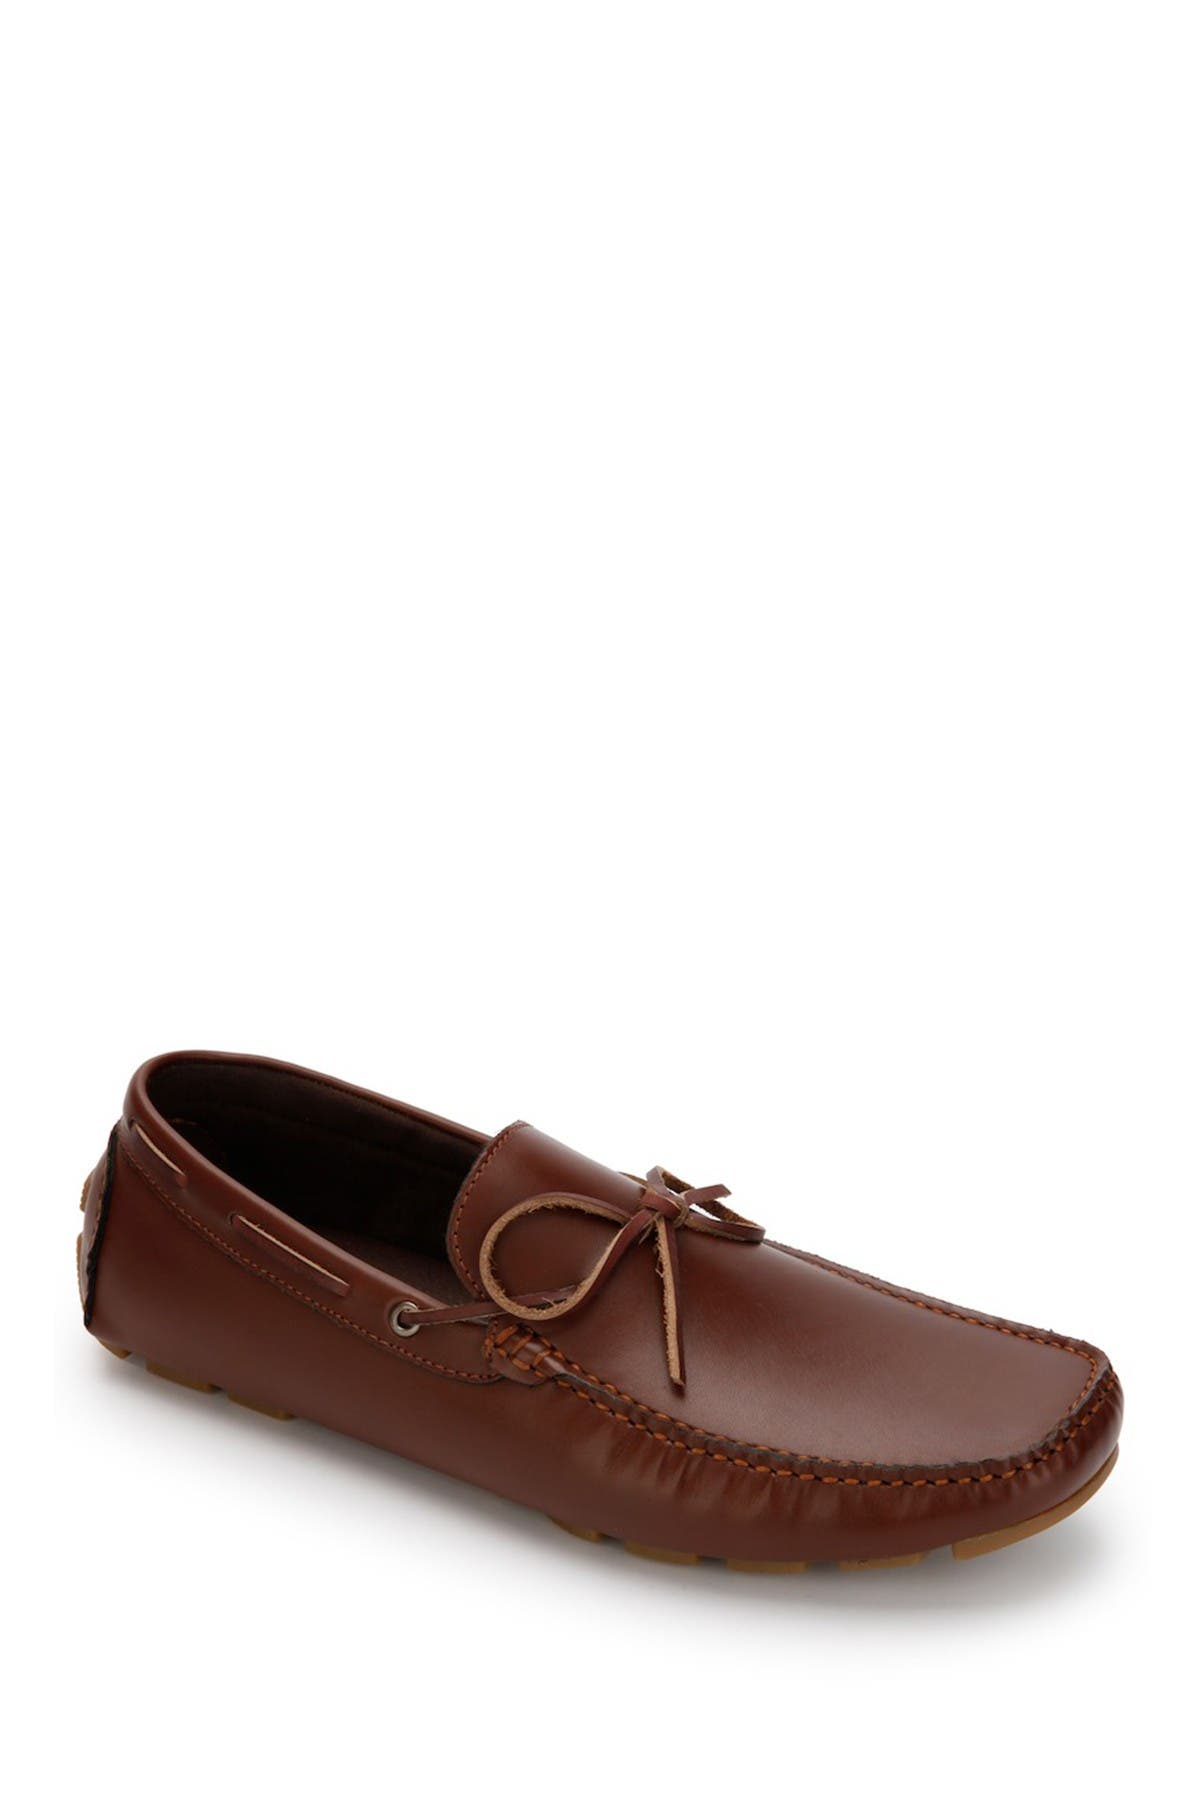 Image of Kenneth Cole Reaction Hope Moc Toe Driver